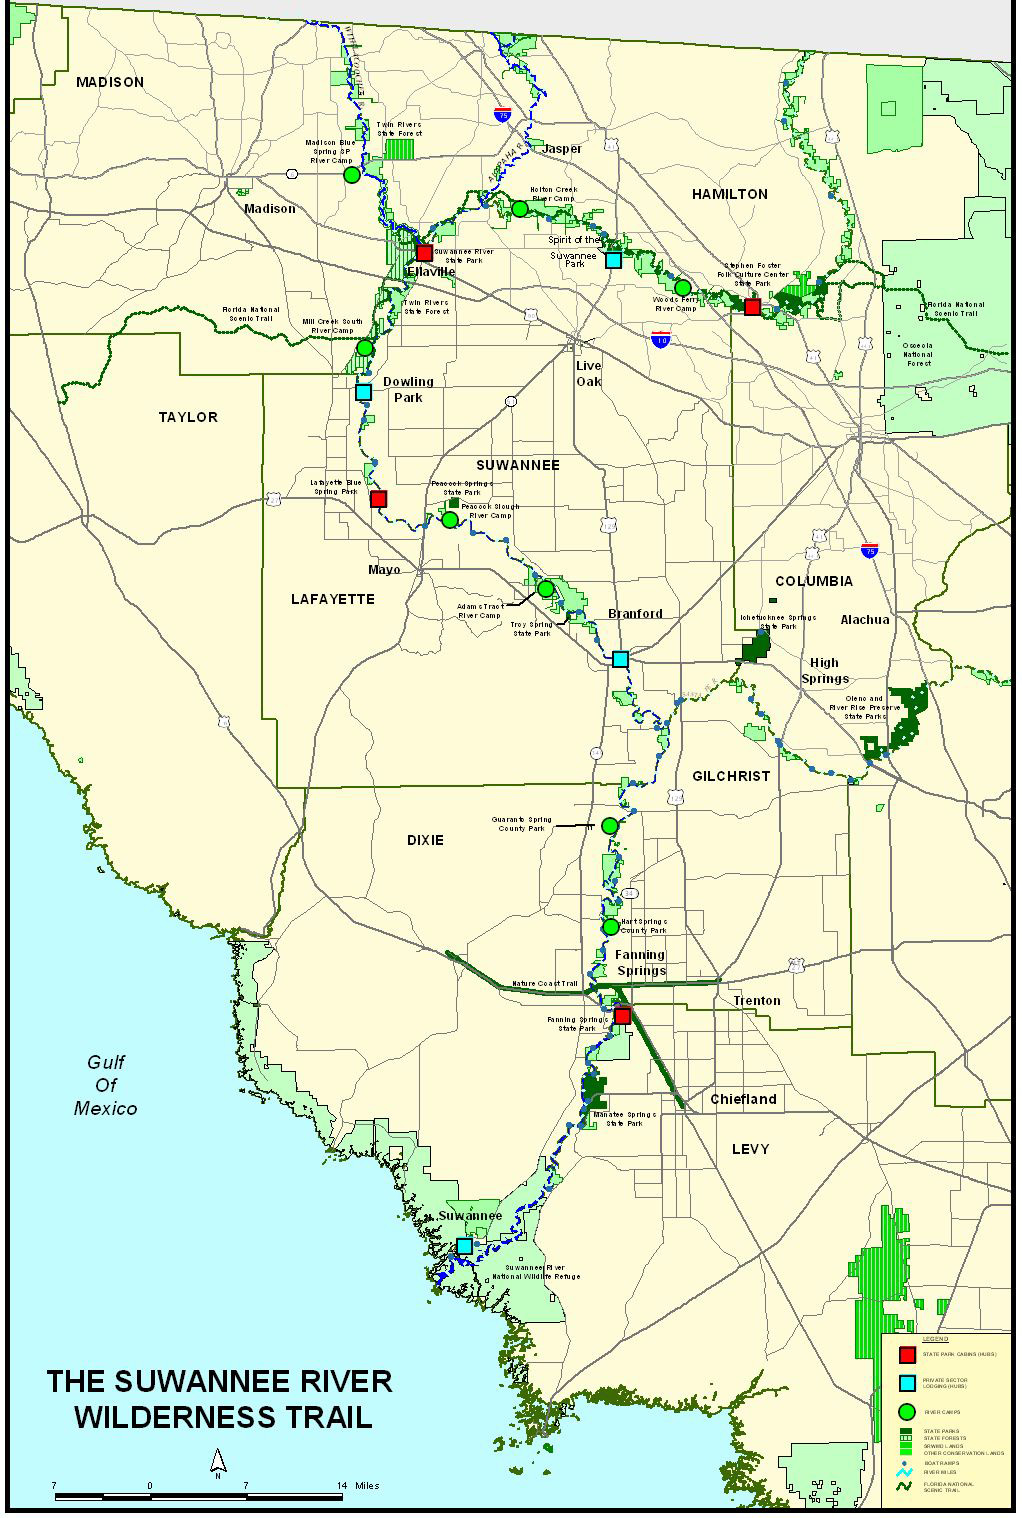 District Publications | Suwannee River Water Management District on santa fe lake map, ichetucknee river map, pensacola river map, lake county ocklawaha river map, chattahoochee river map, santa fe river map, steinhatchee river map, flint river, gulf of mexico map, caloosahatchee river, santa fe river, apalachicola river, st. johns river, cotee river map, miami map, kissimmee river, ocmulgee river, live oak, withlacoochee river, swanee river flordia on map, st. johns river map, alapaha river, savannah river, st. marys river, coosa river, okefenokee swamp map, apalachee river map, apalachicola river map, withlacoochee river map, ogeechee river, white springs, east coast of the united states map, saint augustine river map, tampa bay map, oconee river, chattahoochee river, lower suwannee national wildlife refuge map,